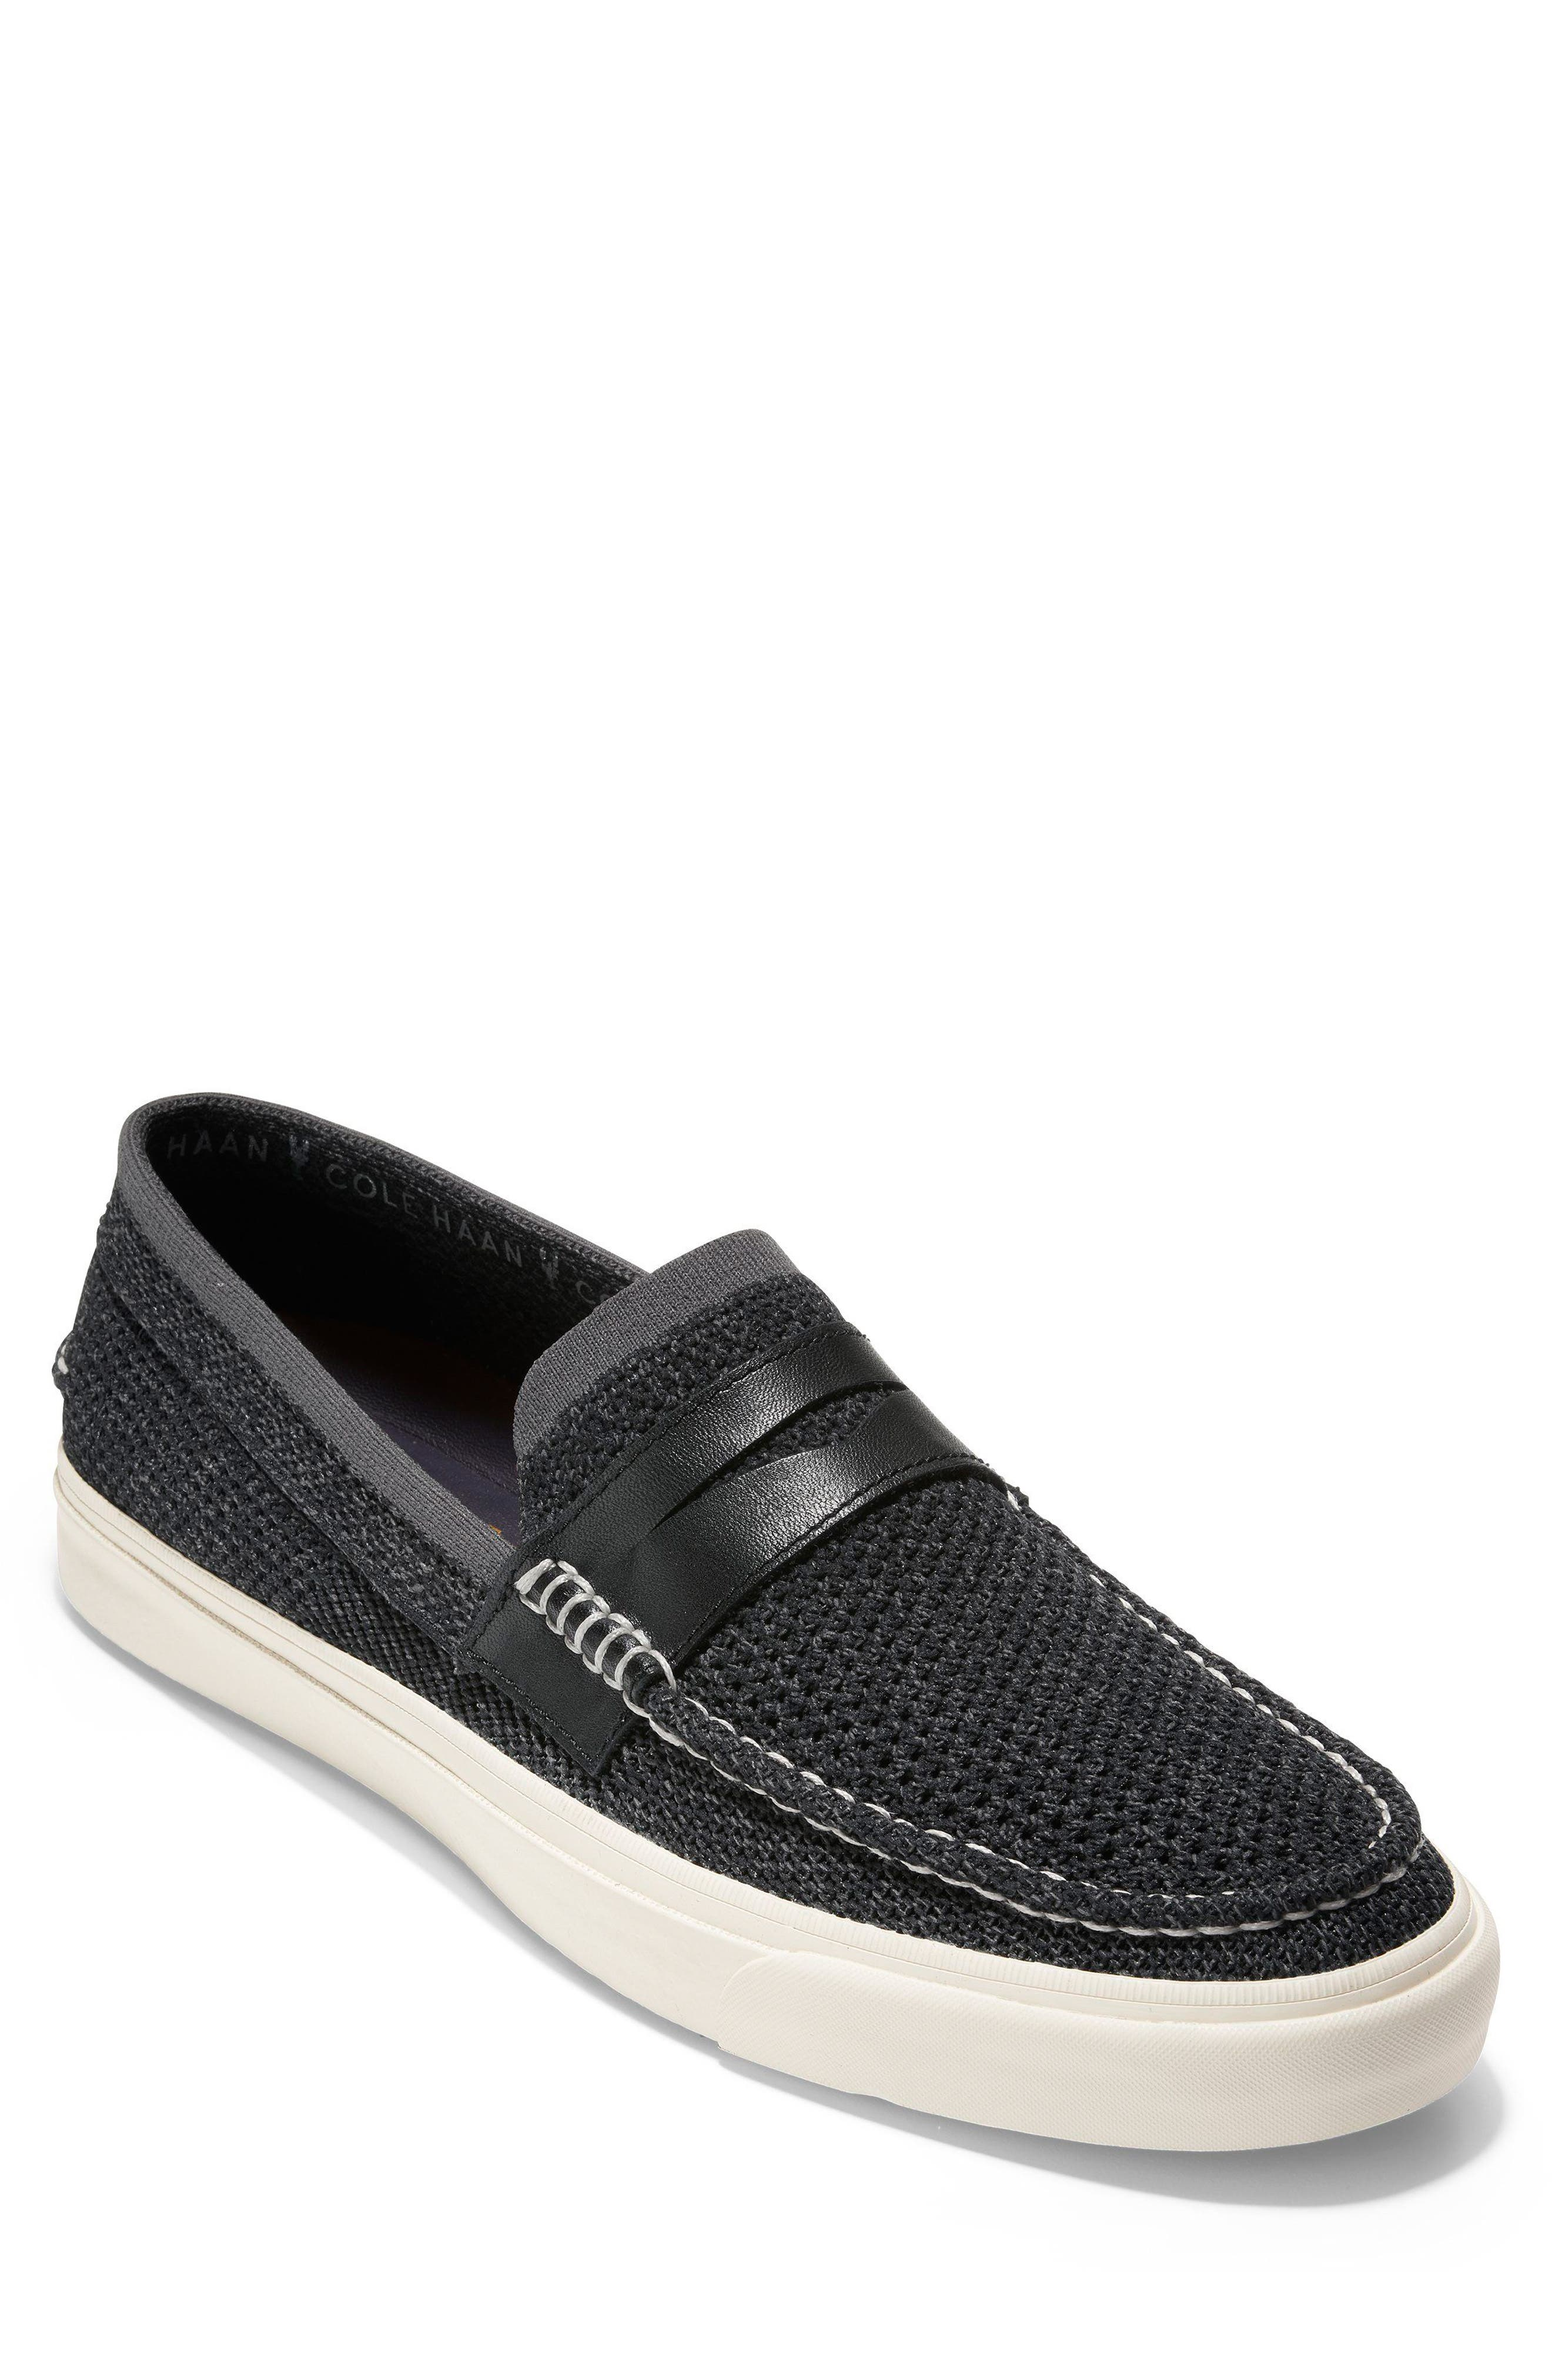 Pinch Weekend Stitch Penny Loafer,                             Main thumbnail 1, color,                             BLACK MAGNET